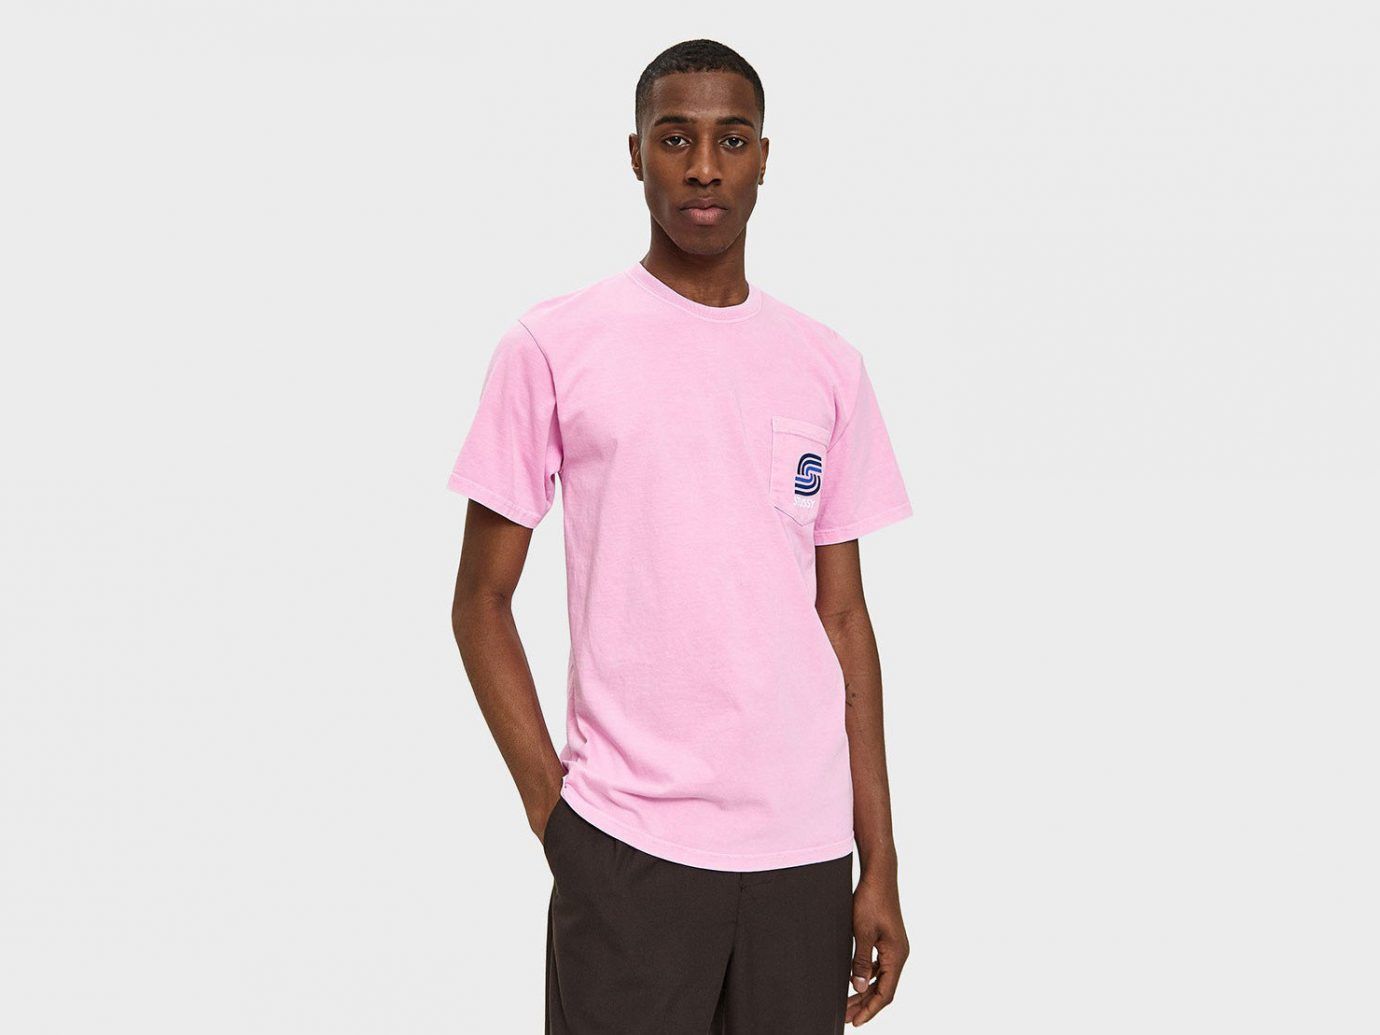 Spring Travel Style + Design Summer Travel Travel Shop t shirt clothing pink white sleeve standing person shoulder magenta neck joint arm sportswear pocket product posing